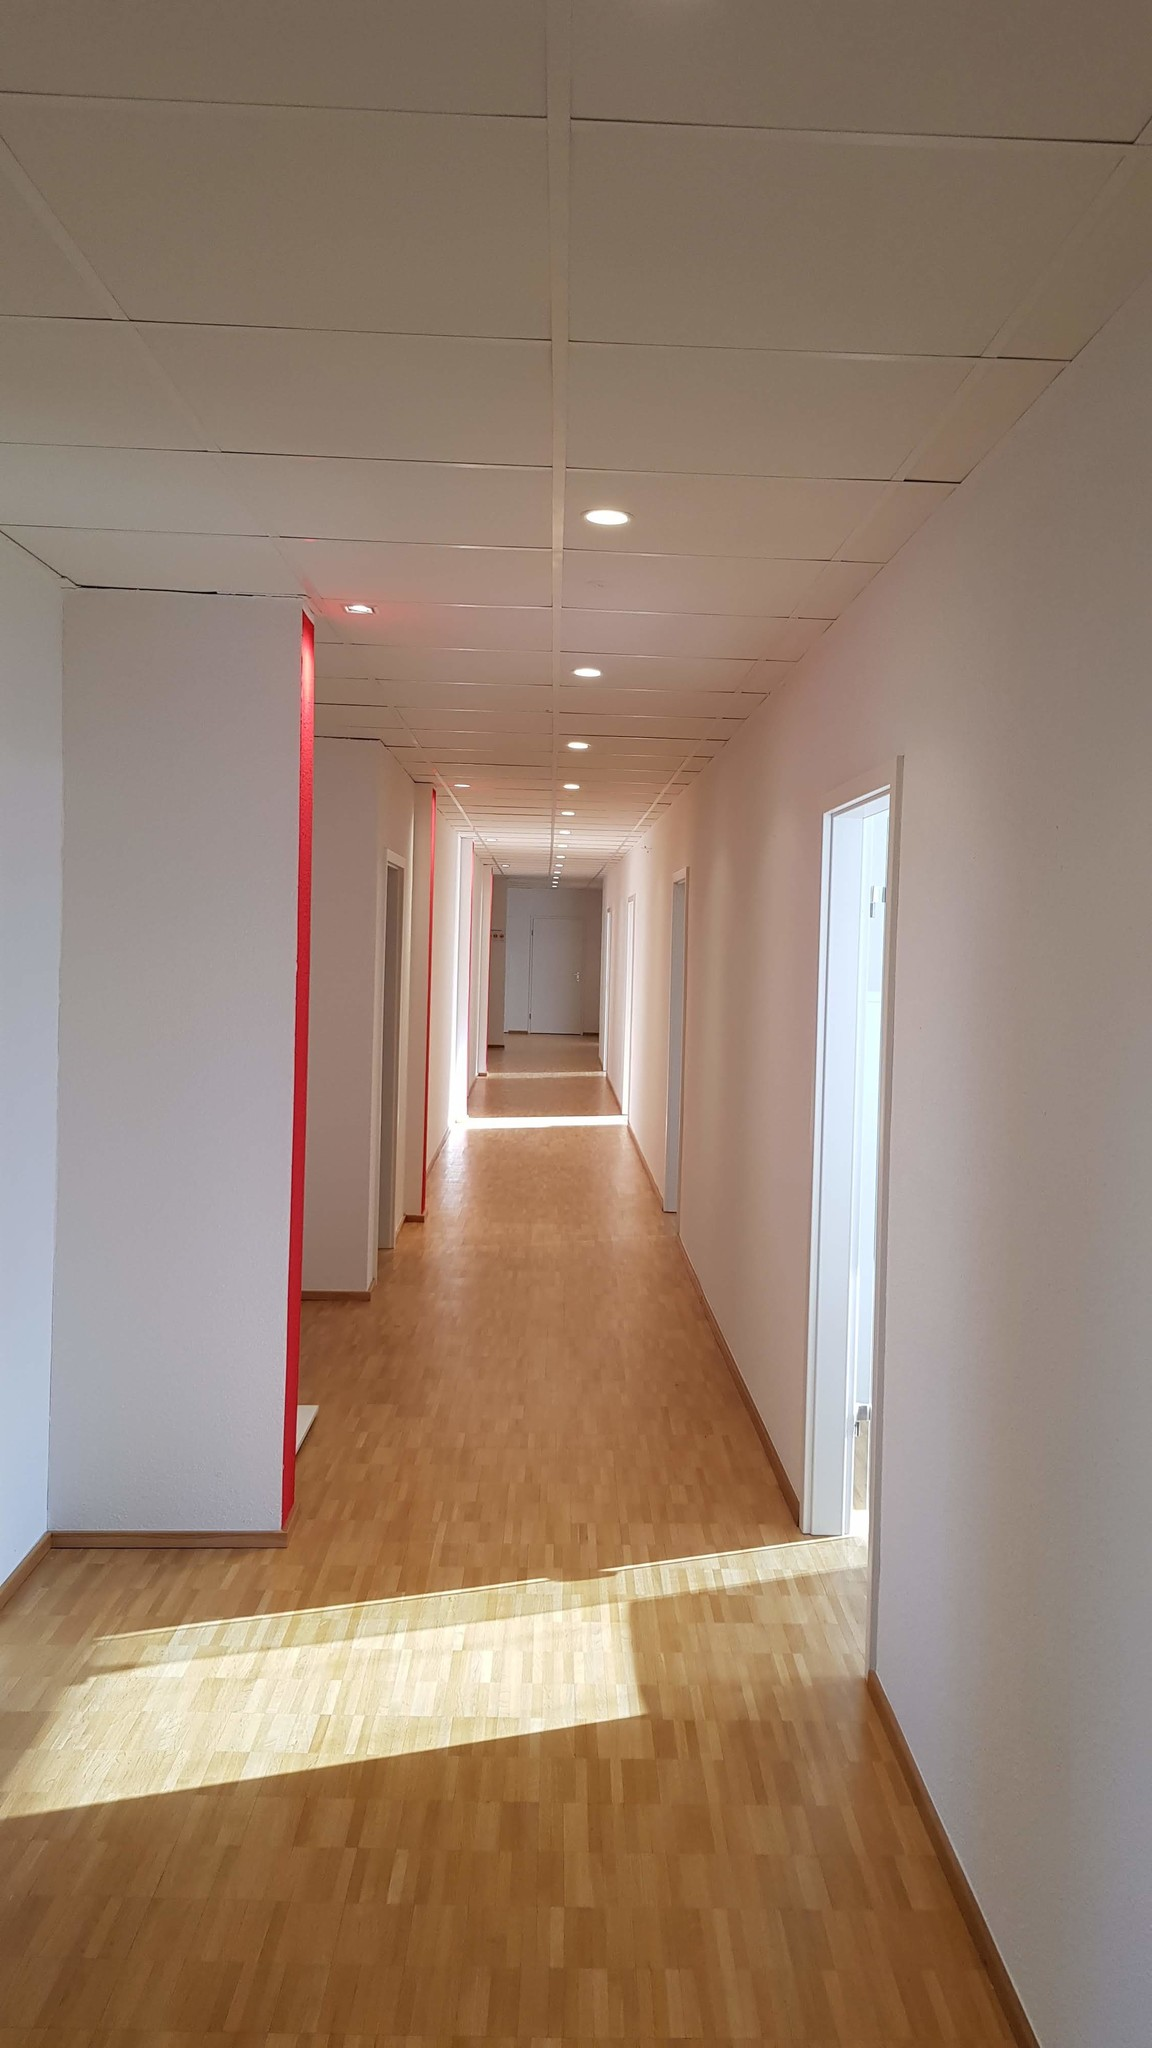 Energy-saving dimming Corridor lighting Corridor lighting